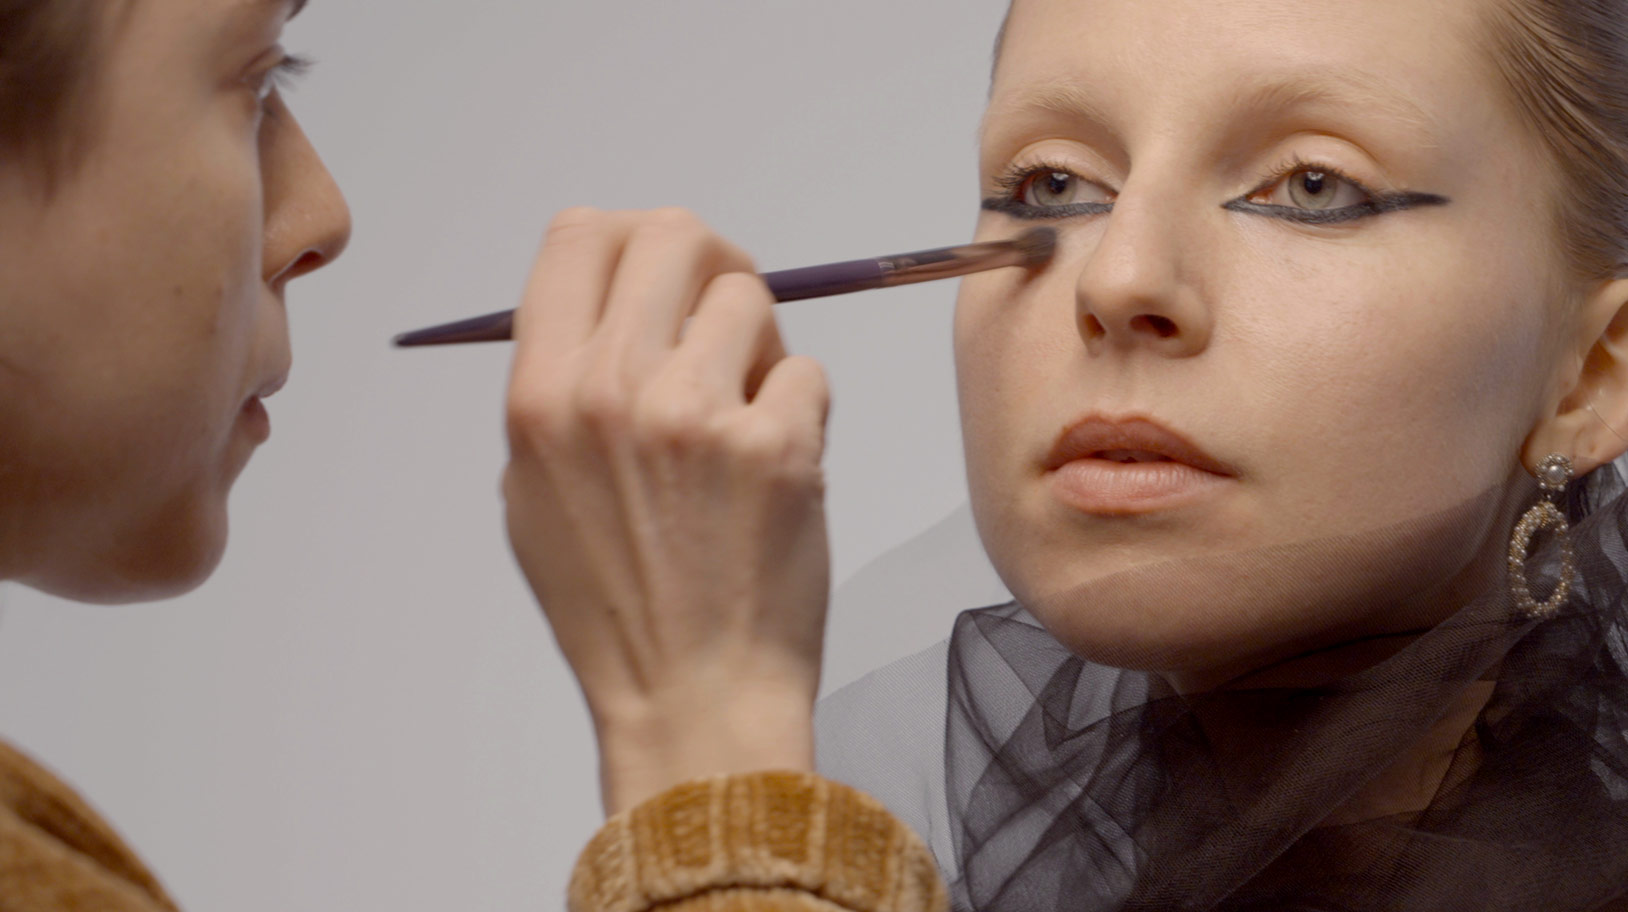 Makeup for fashion photography